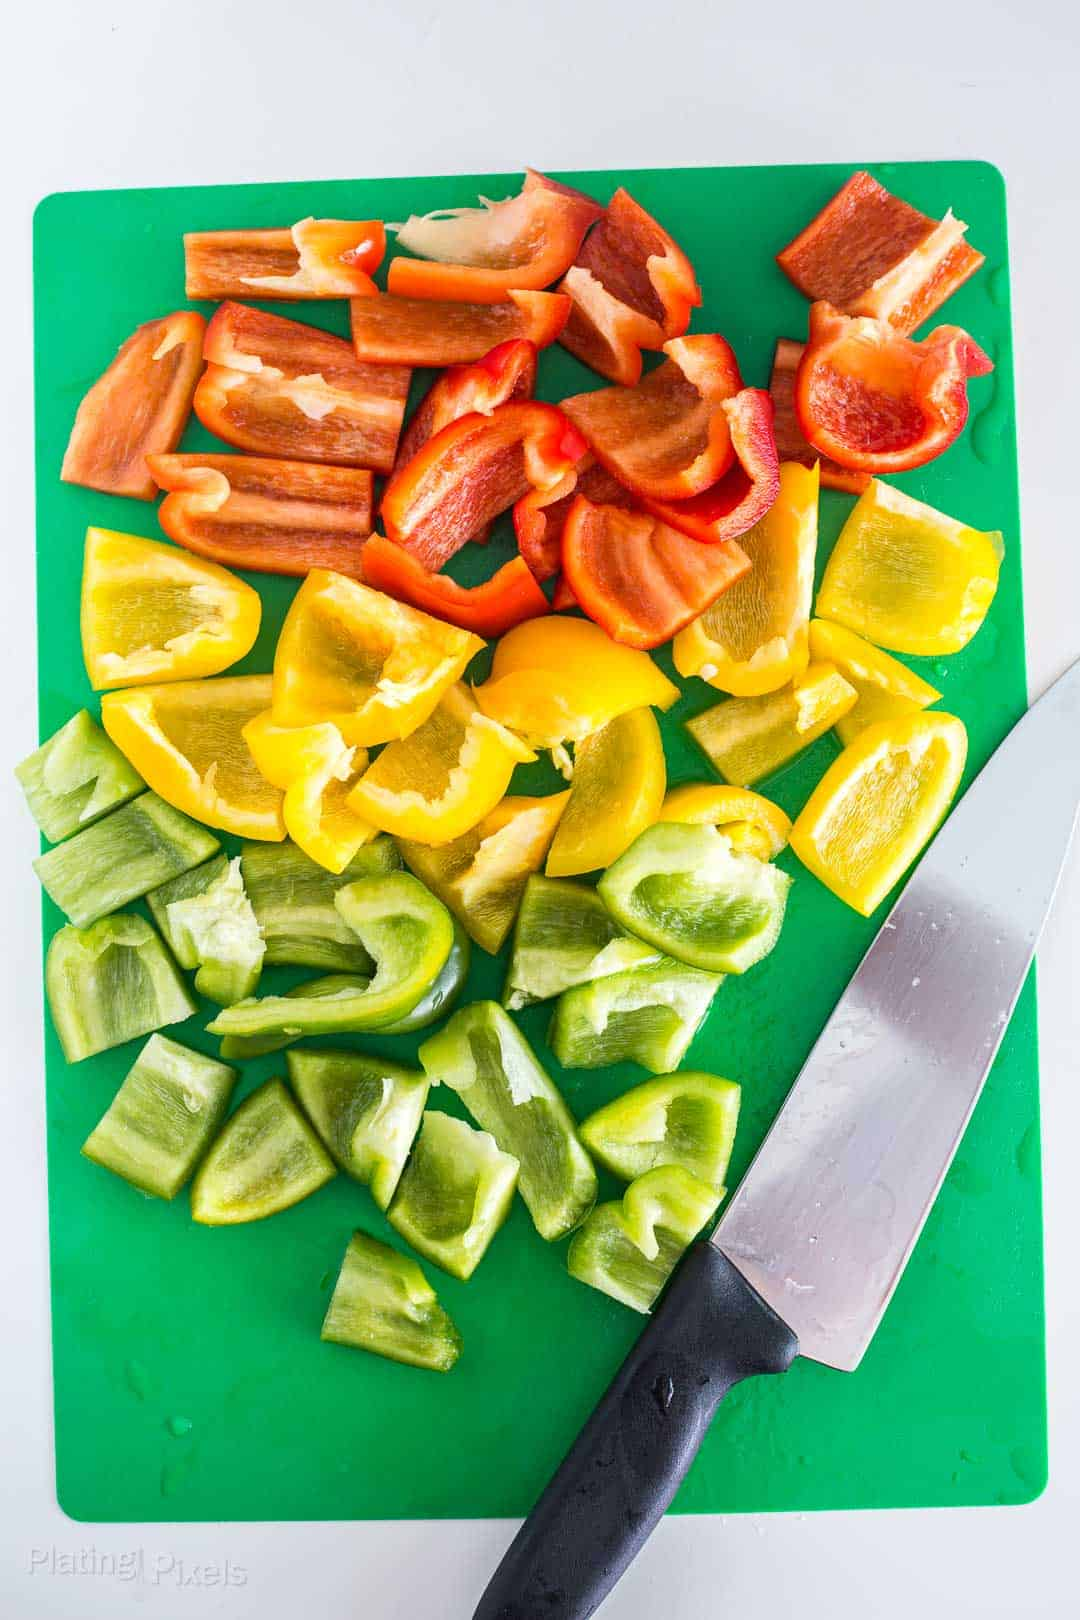 Process shot of chopped bell peppers on a cutting board